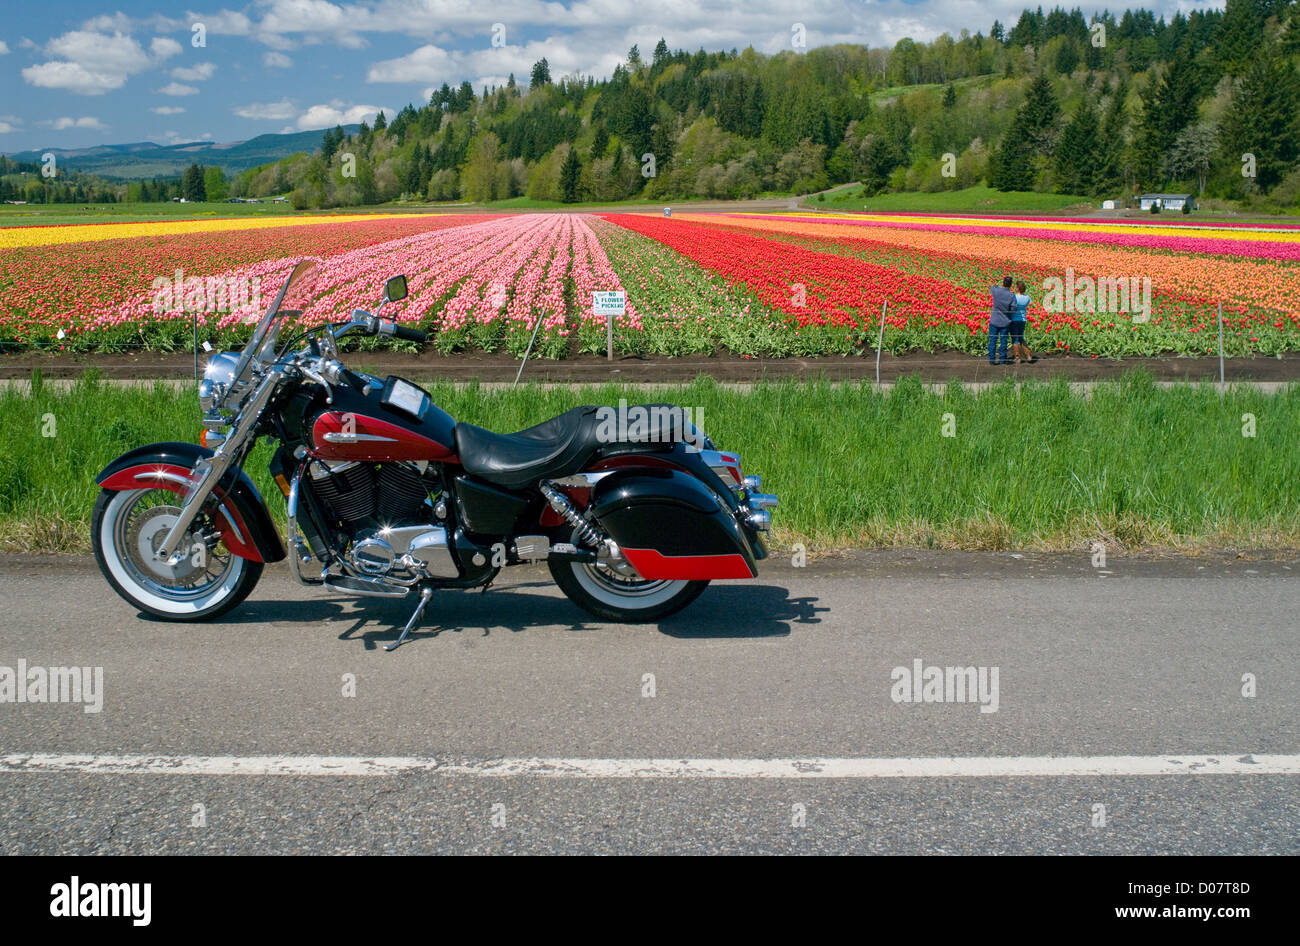 A motorcycle is parked in front of a vibrant and beautiful field of tulips, while a man and woman also enjoy the - Stock Image